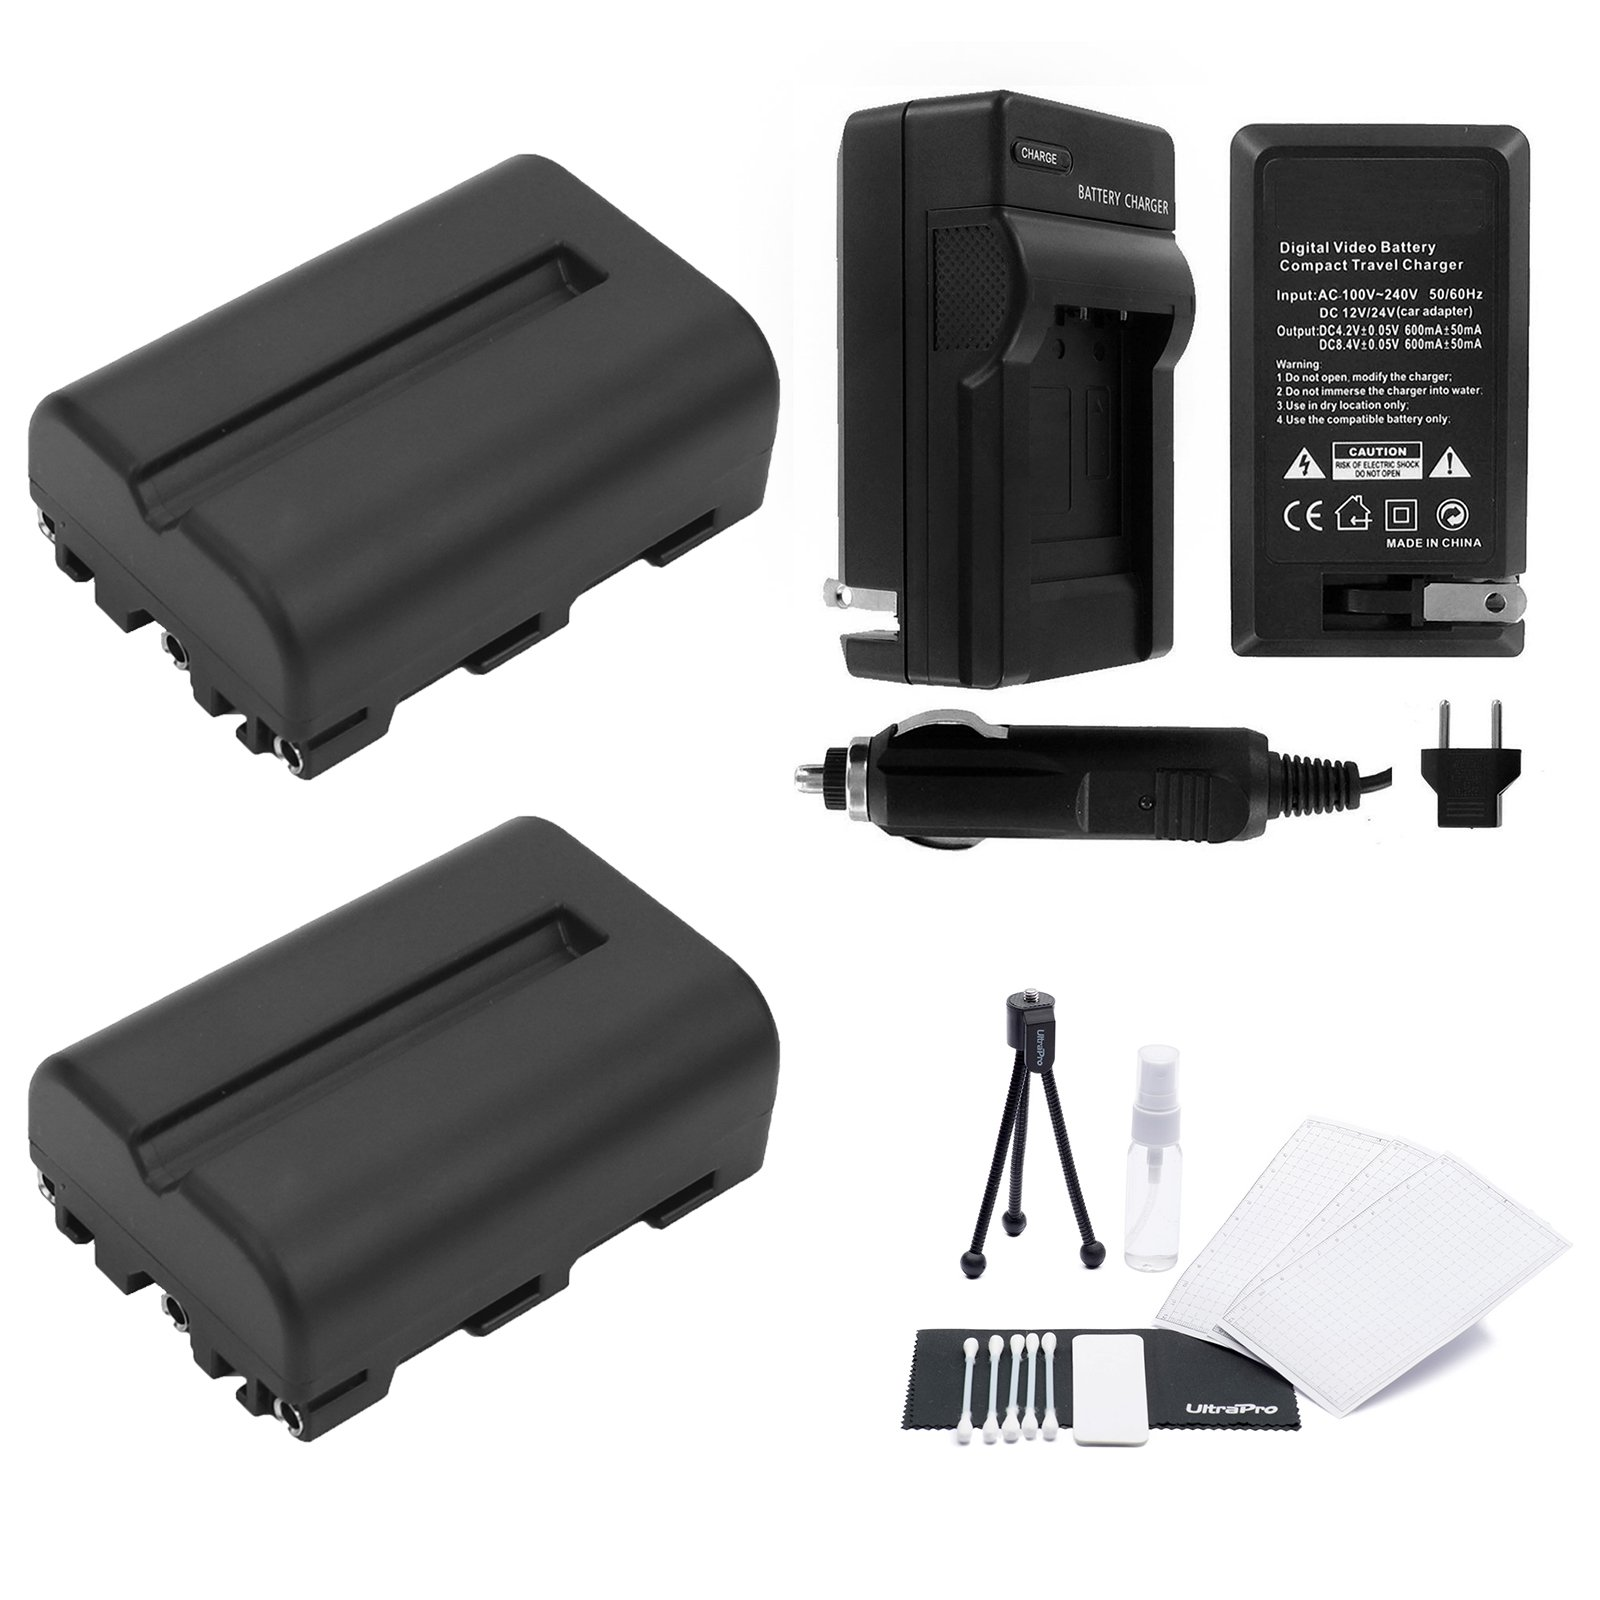 NP-FM500H Battery 2-Pack Bundle with Rapid Travel Charger and UltraPro Accessory Kit for Select Sony Cameras Including Alpha A58, A65, A77, and A99